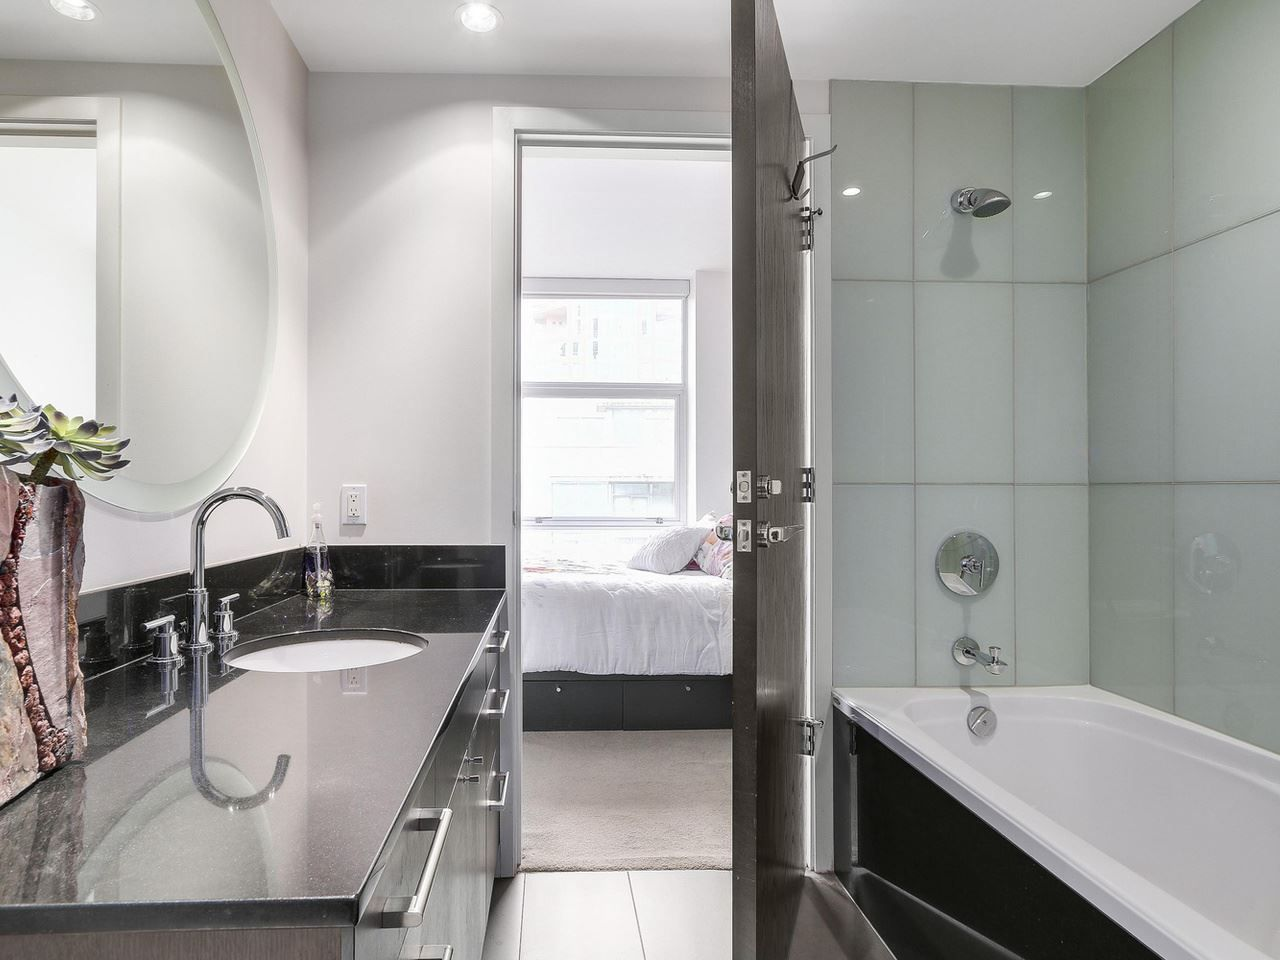 Photo 18: Photos: 401 1455 HOWE STREET in Vancouver: Yaletown Condo for sale (Vancouver West)  : MLS®# R2145939